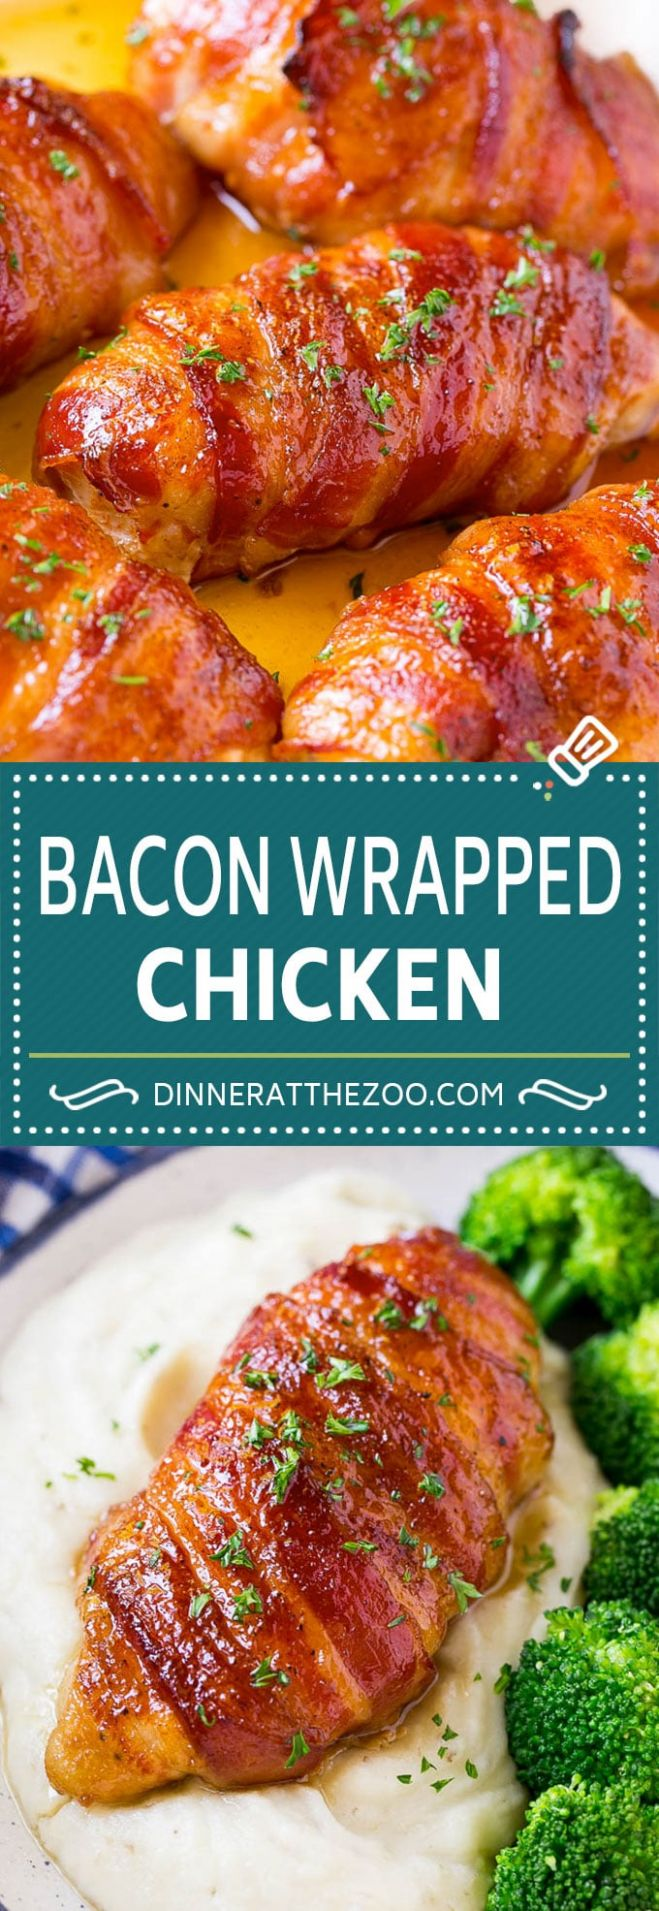 Bacon Wrapped Chicken - Dinner at the Zoo - Recipes Chicken Breast Wrapped In Bacon